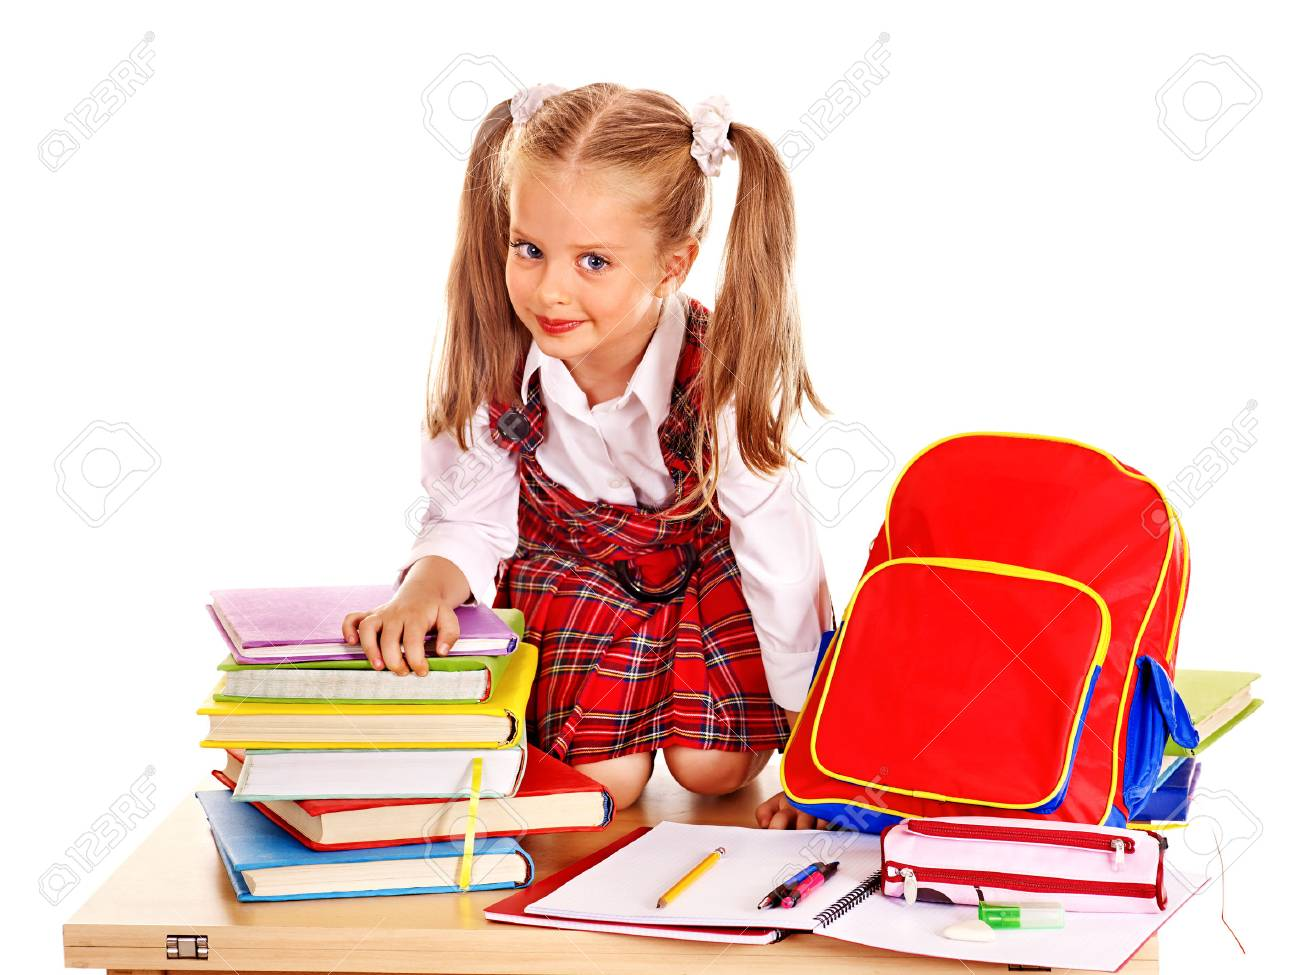 Happy child with backpack holding book. Isolated. Stock Photo - 30839430 6f8d275e480d7